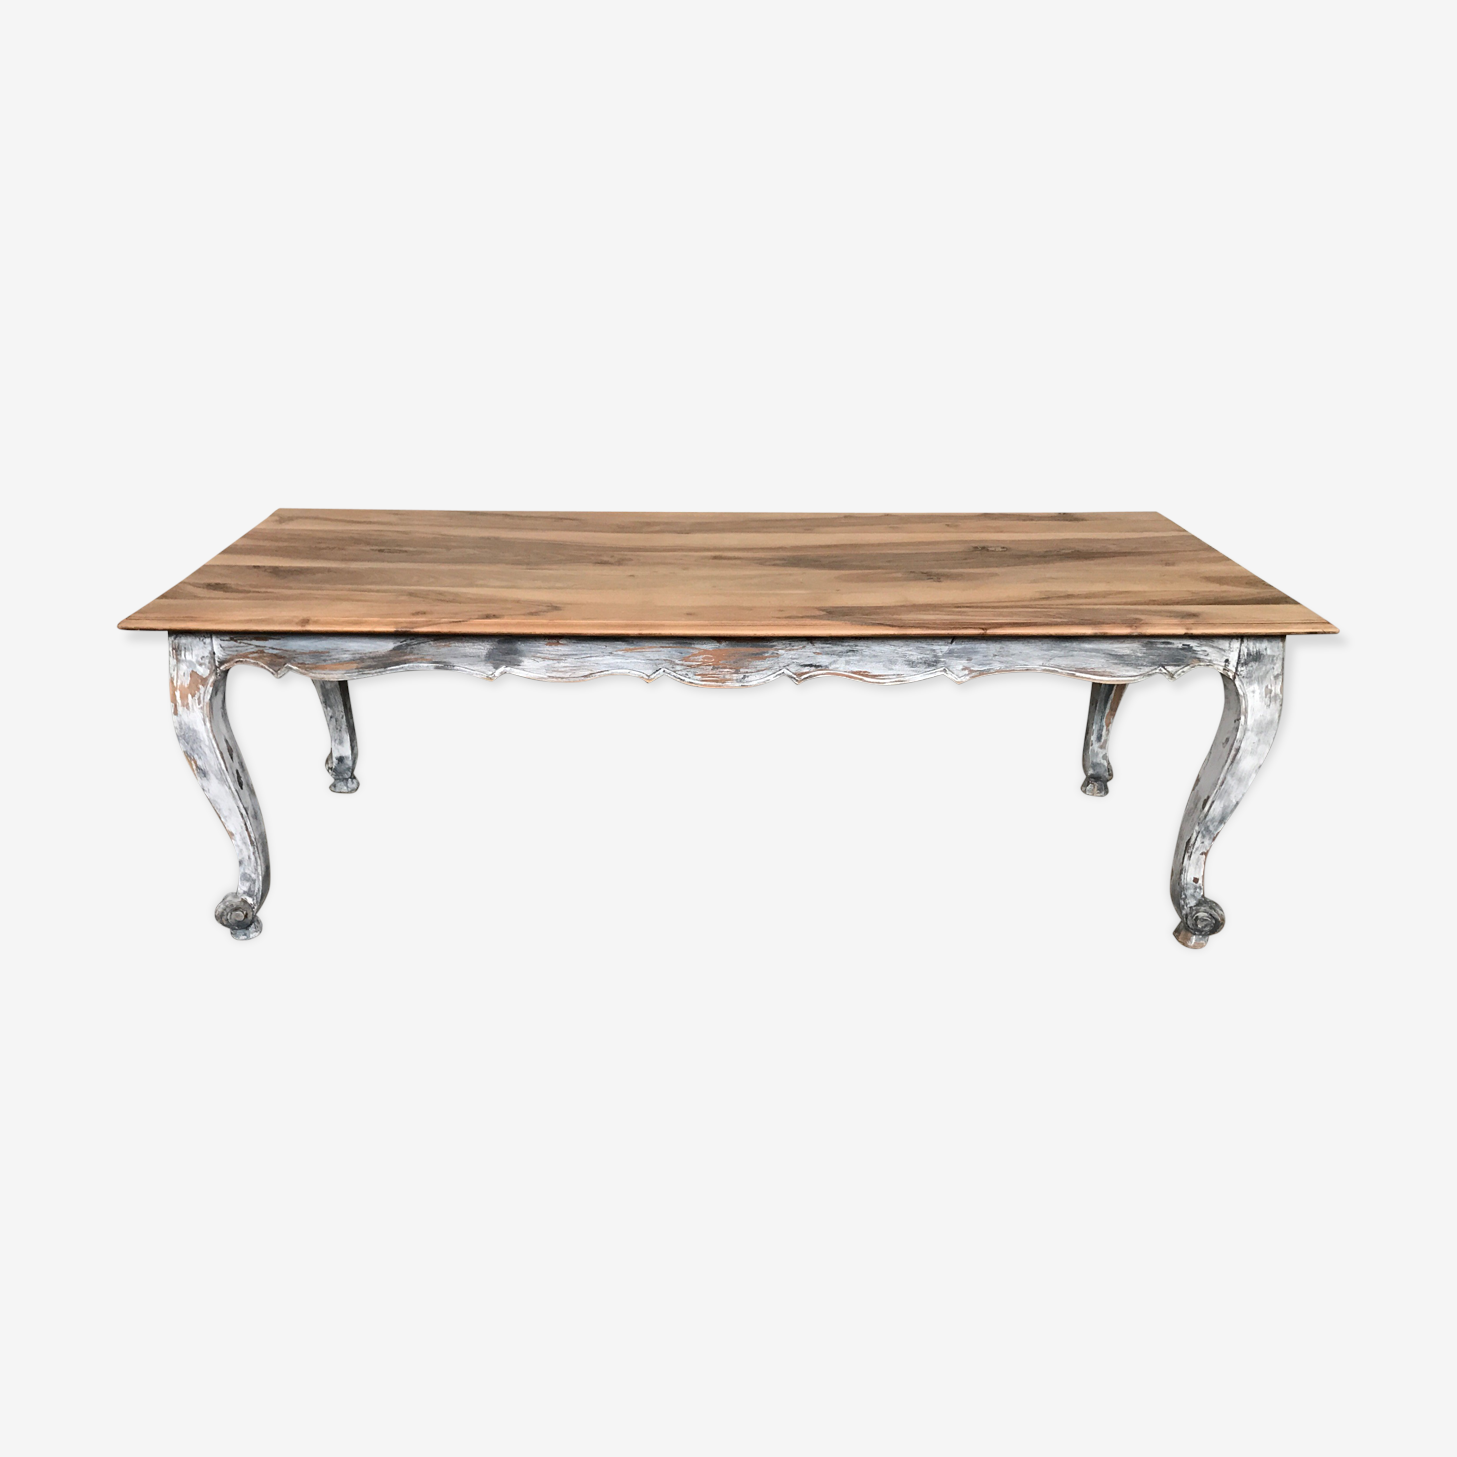 Table en noyer massif patinée shabby chic